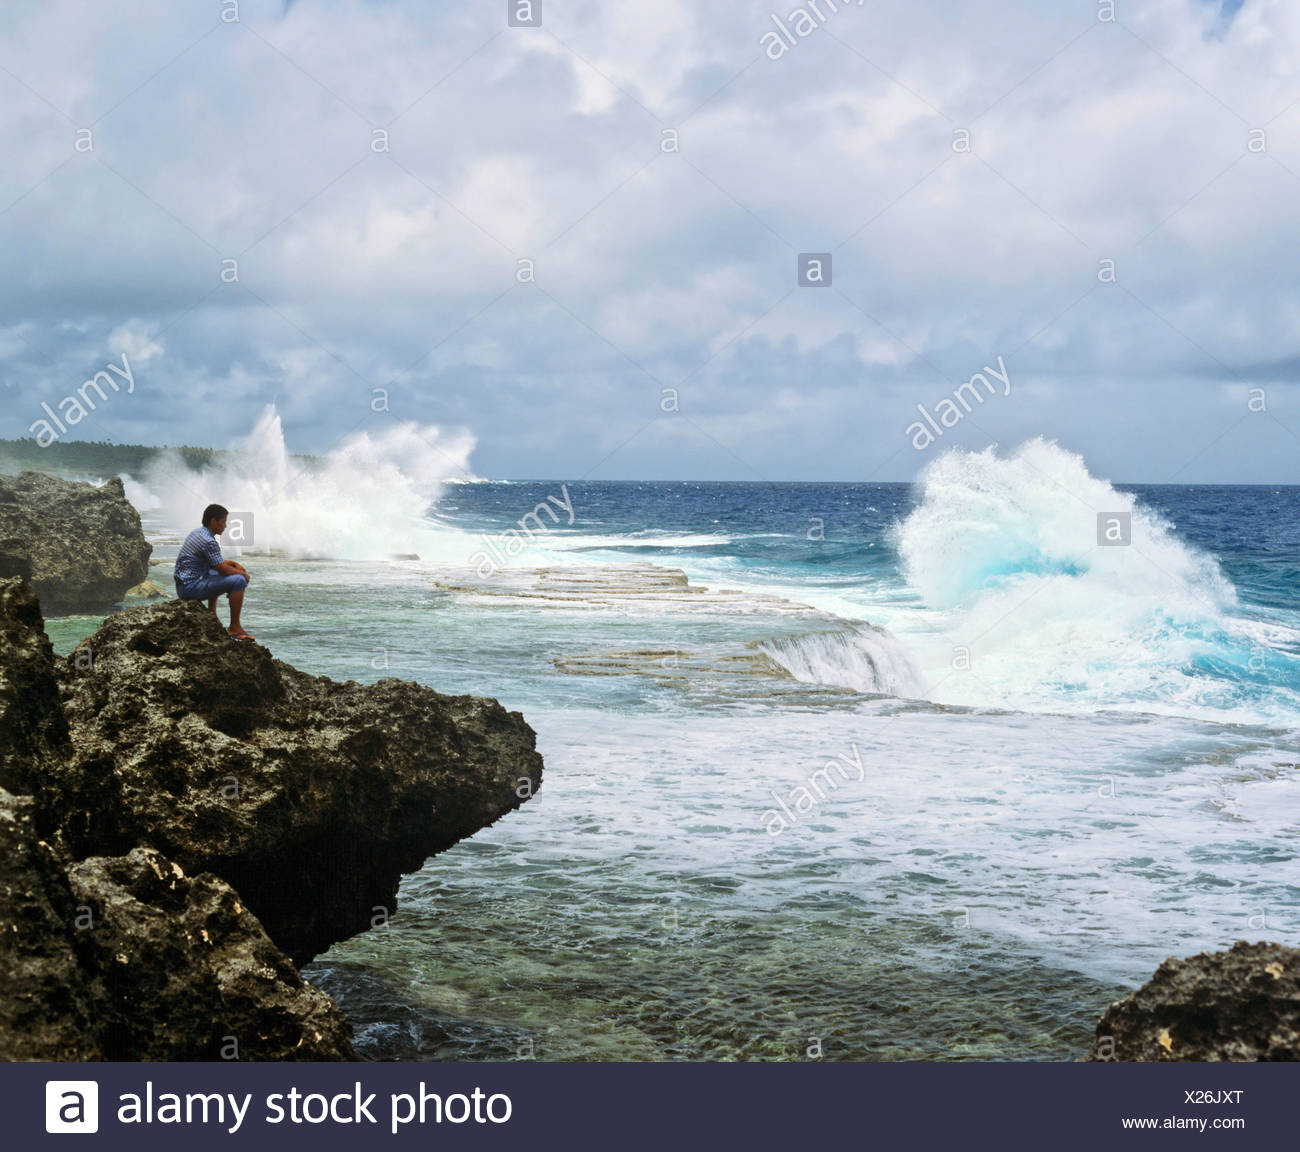 Rocky coast, Nukuʻalofa, Tonga, South Pacific, Oceania - Stock Image